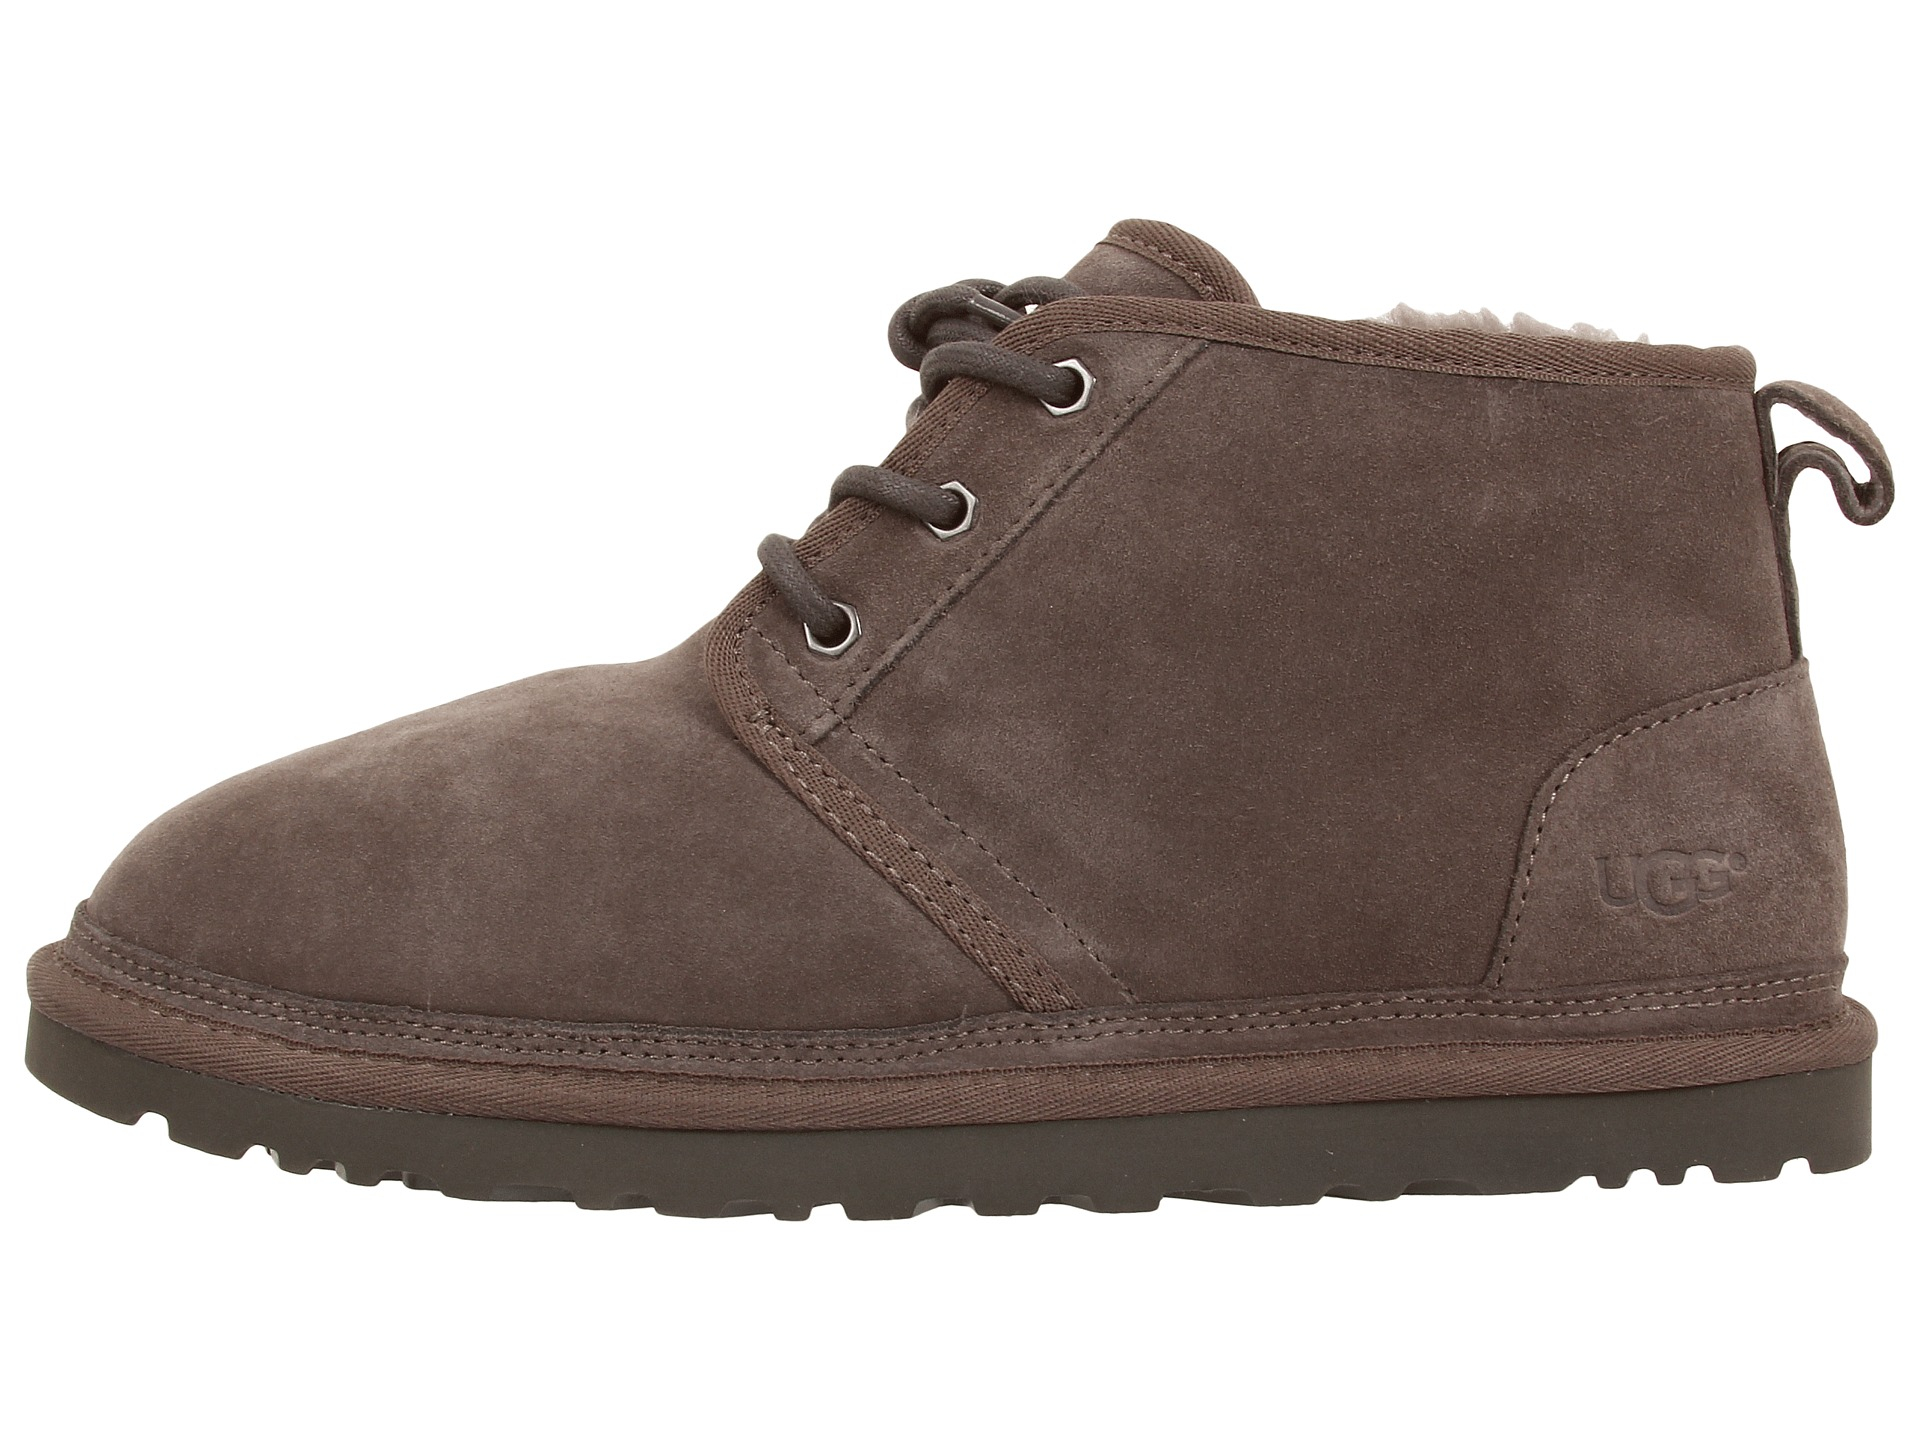 Ugg Neumel In Gray For Men Lyst